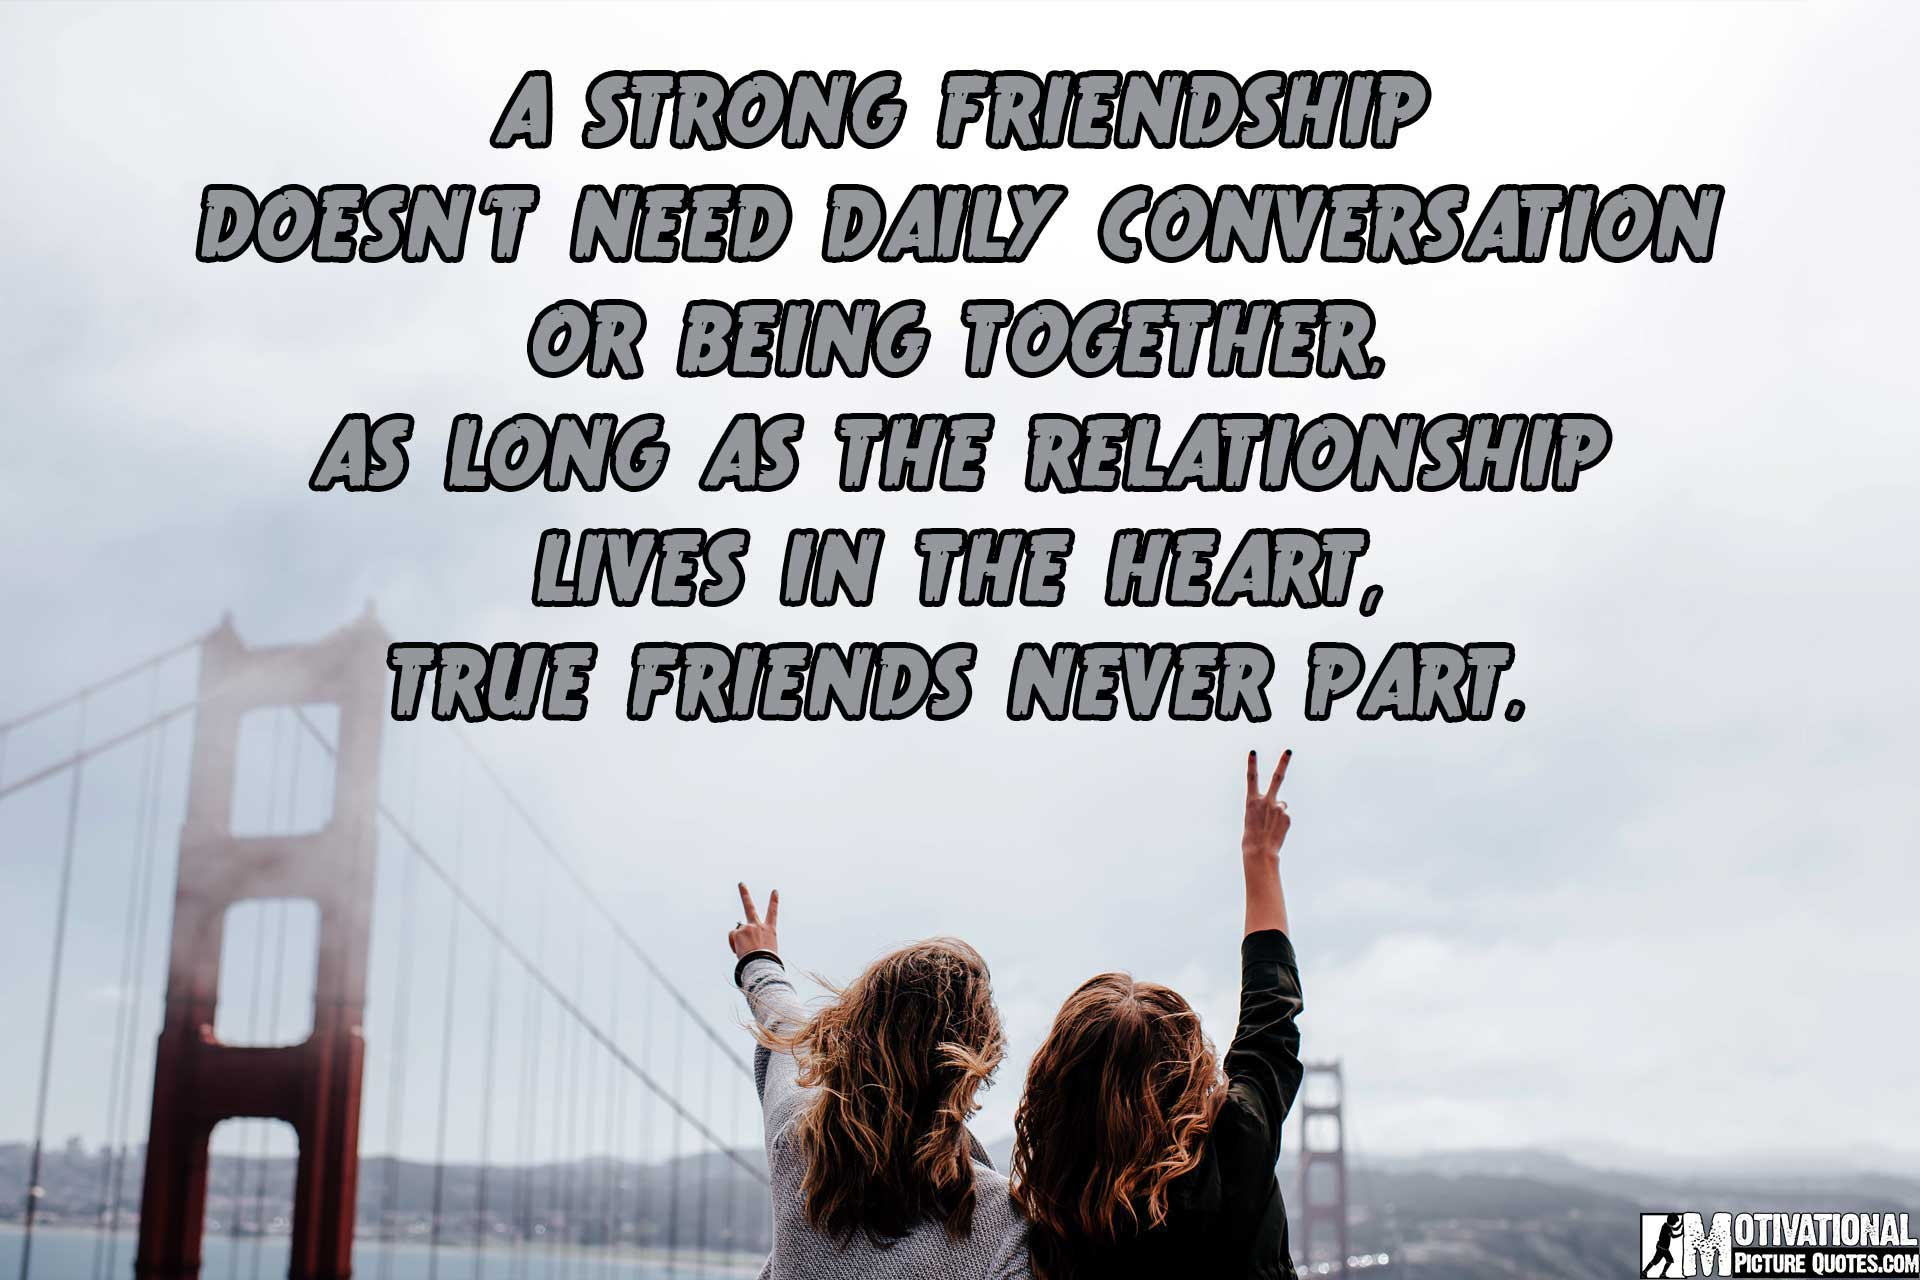 Images With Quotes About Friendship Brilliant 25 Inspirational Friendship Quotes Images  Free Download